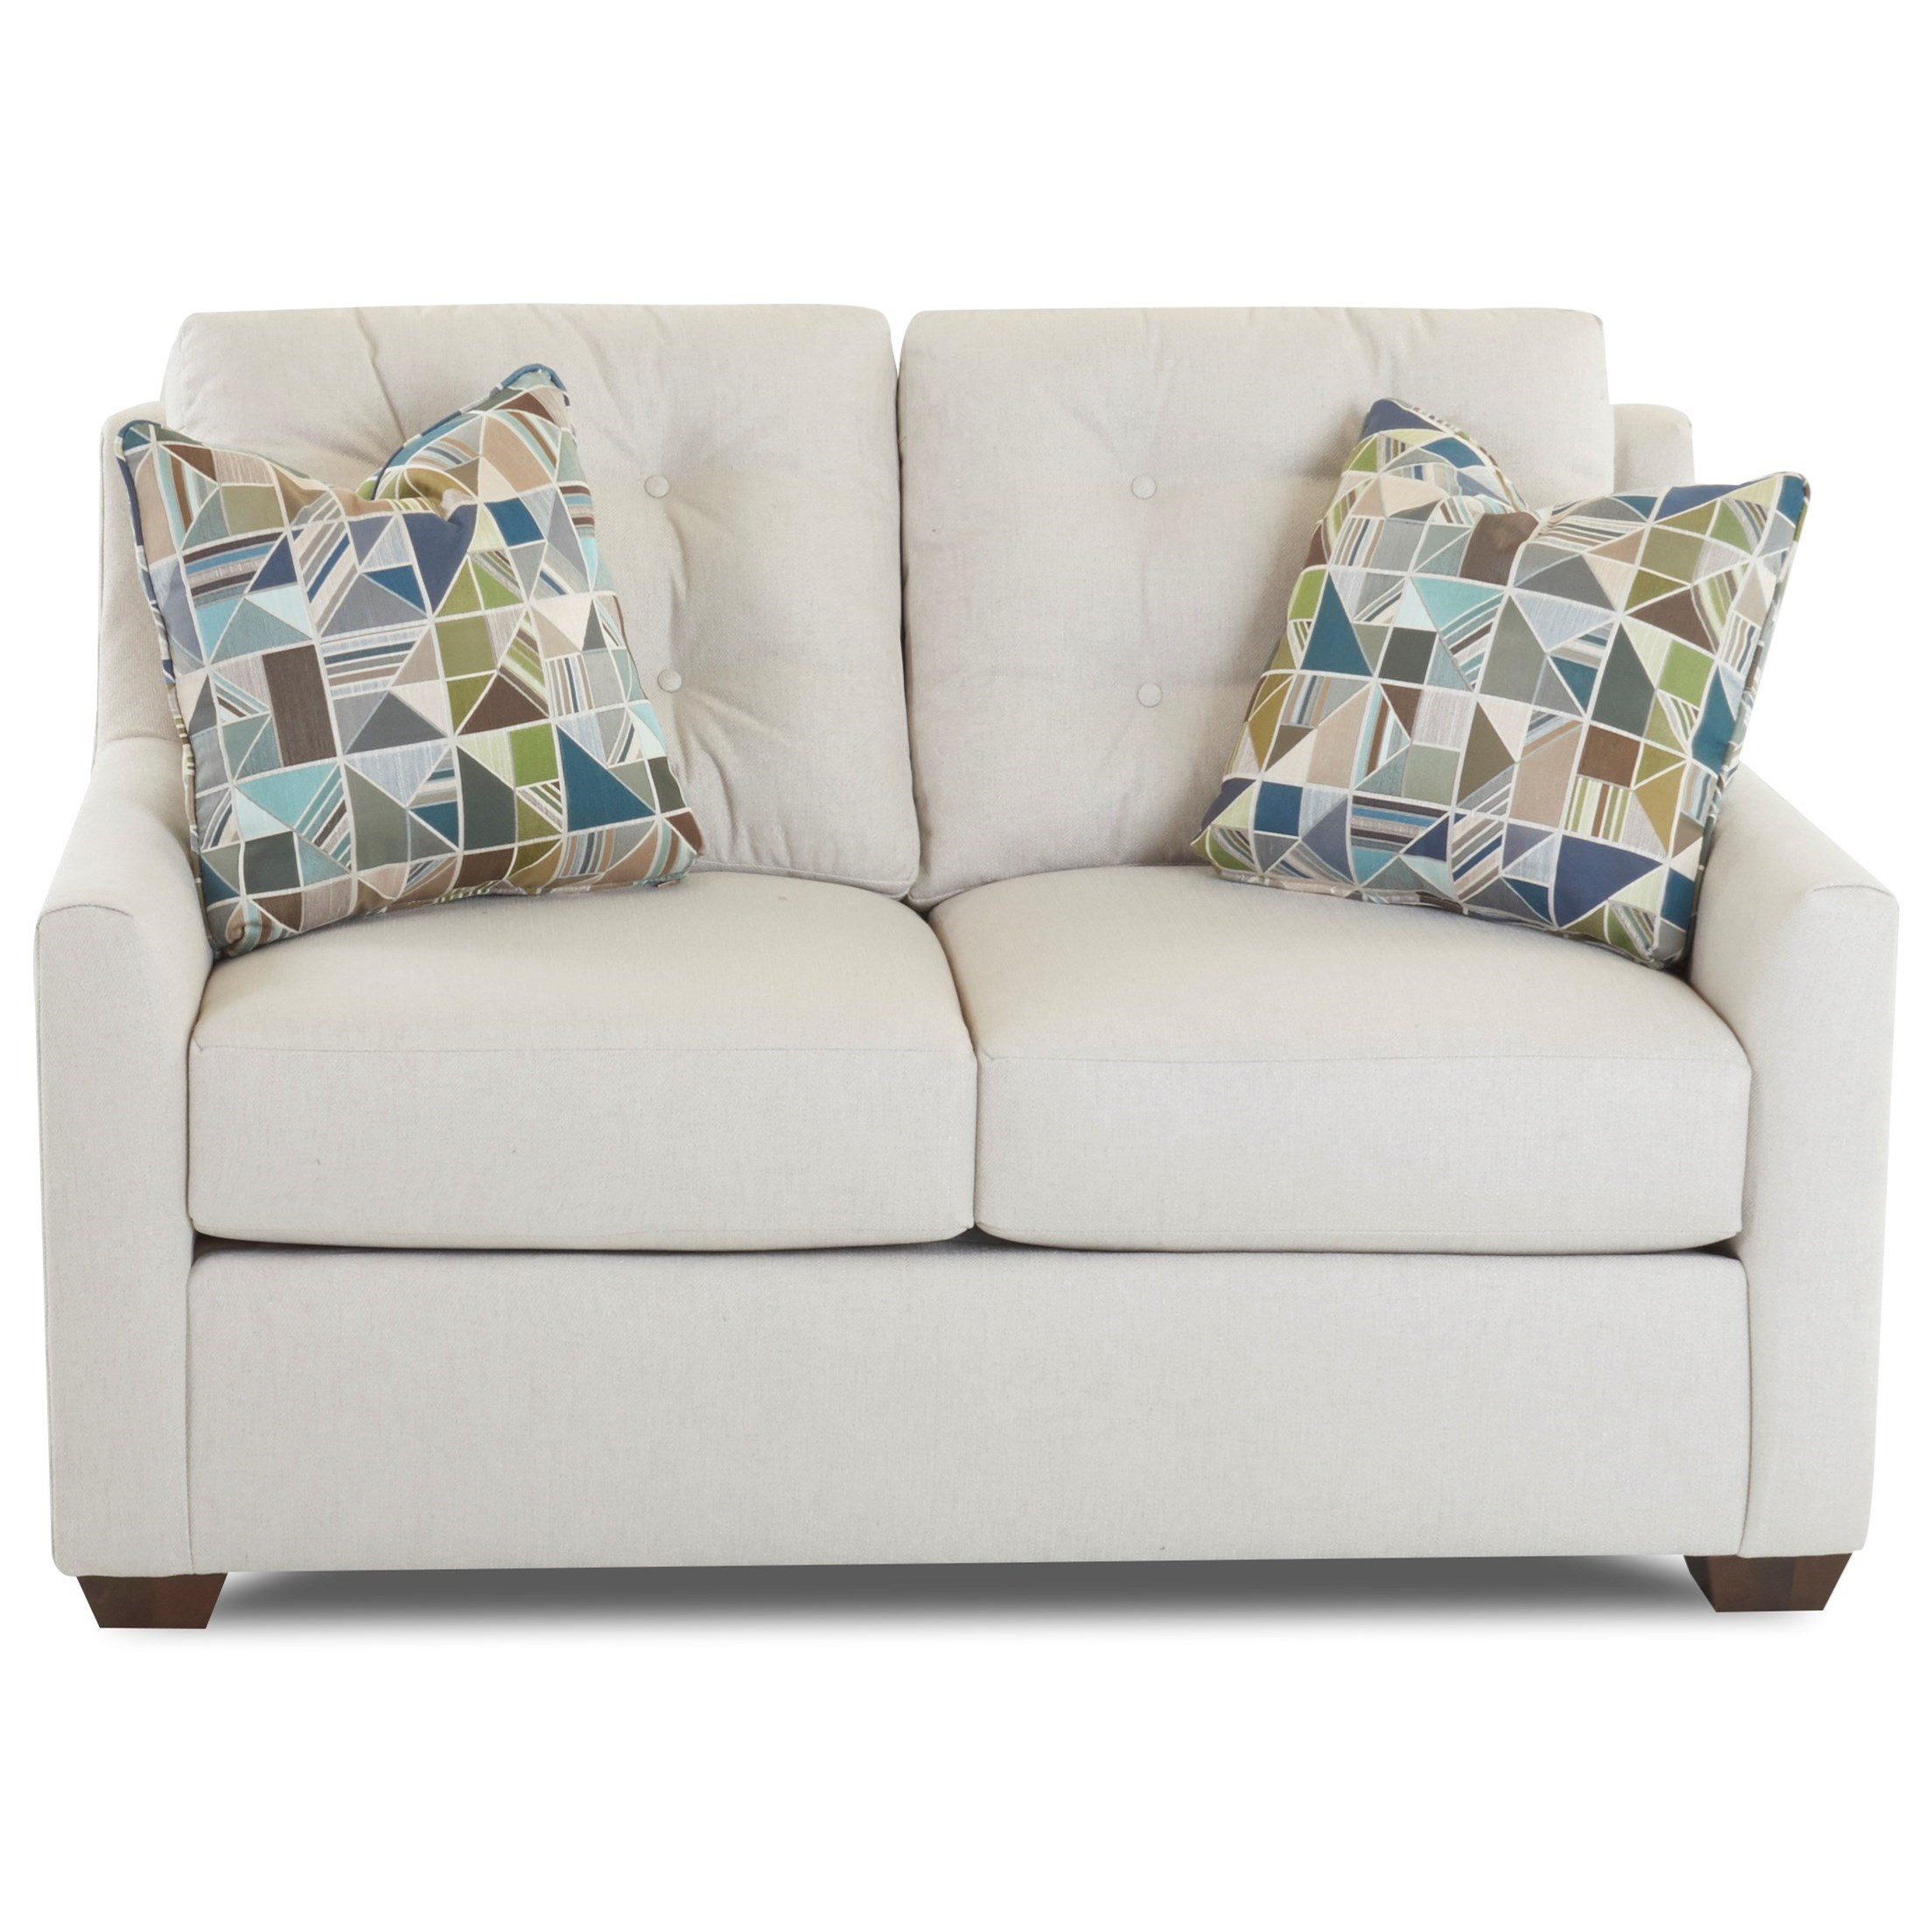 Grayton Loveseat w/ Button Tufting by Klaussner at Johnny Janosik